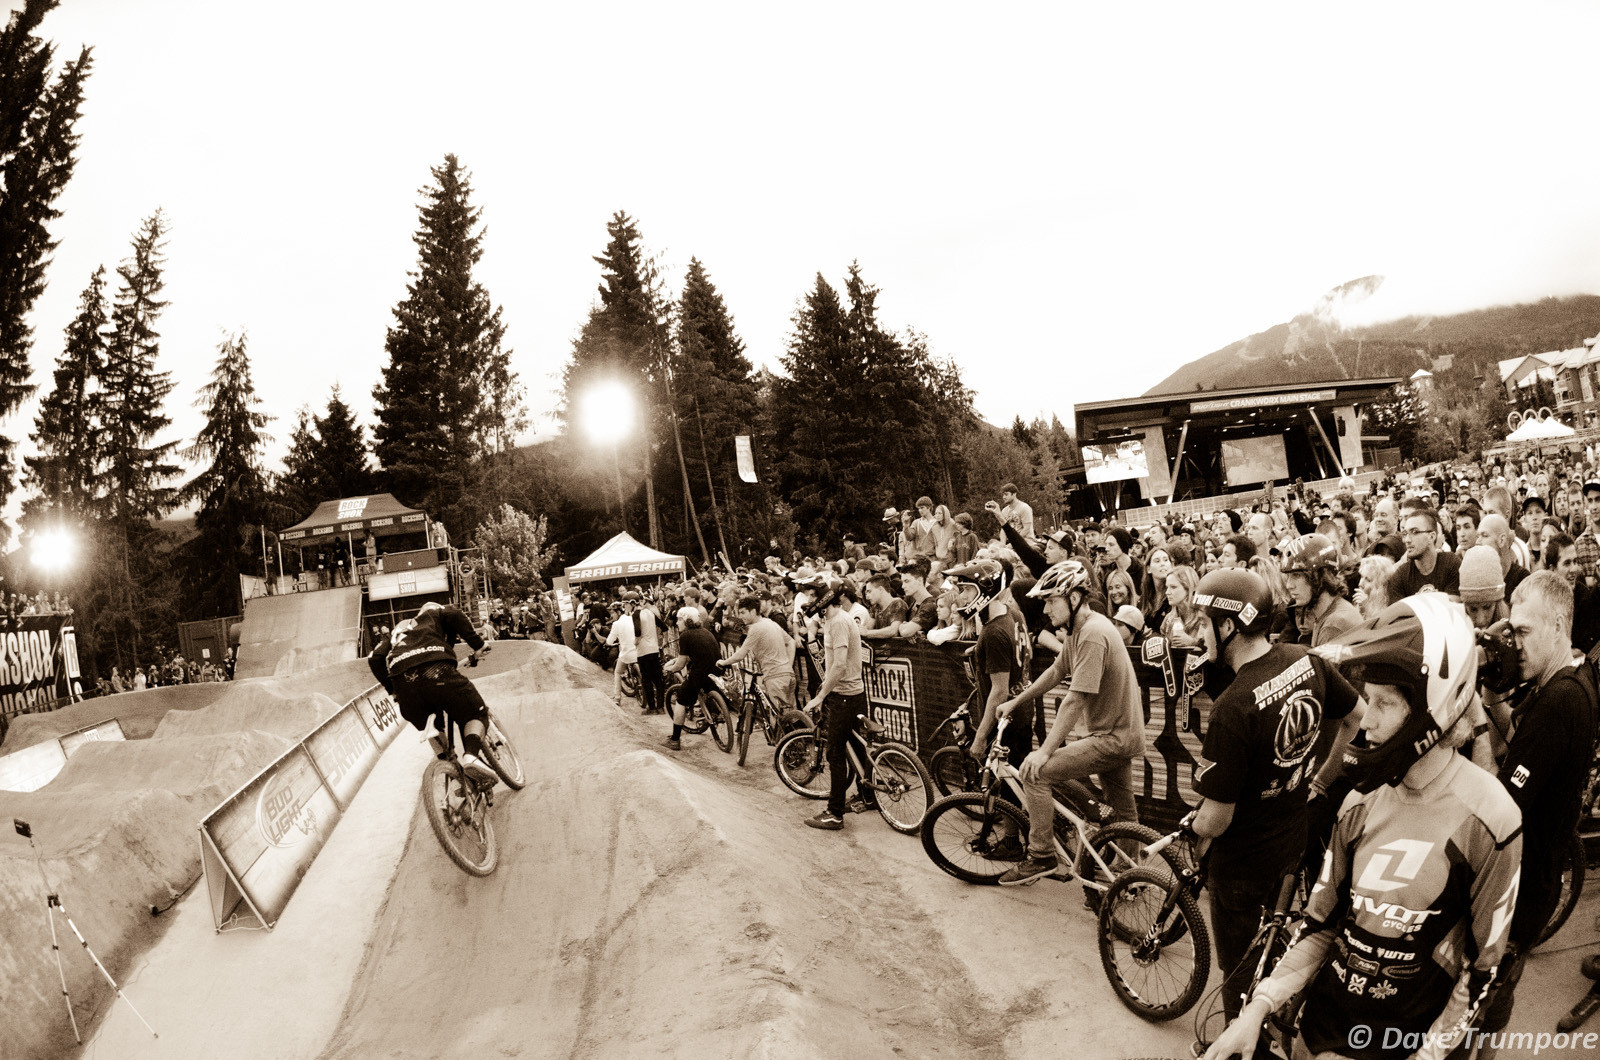 Packed House at the Crankworx Ultimate Pumptrack Challenge - Crankworx Ultimate Pumptrack Challenge Action - Mountain Biking Pictures - Vital MTB